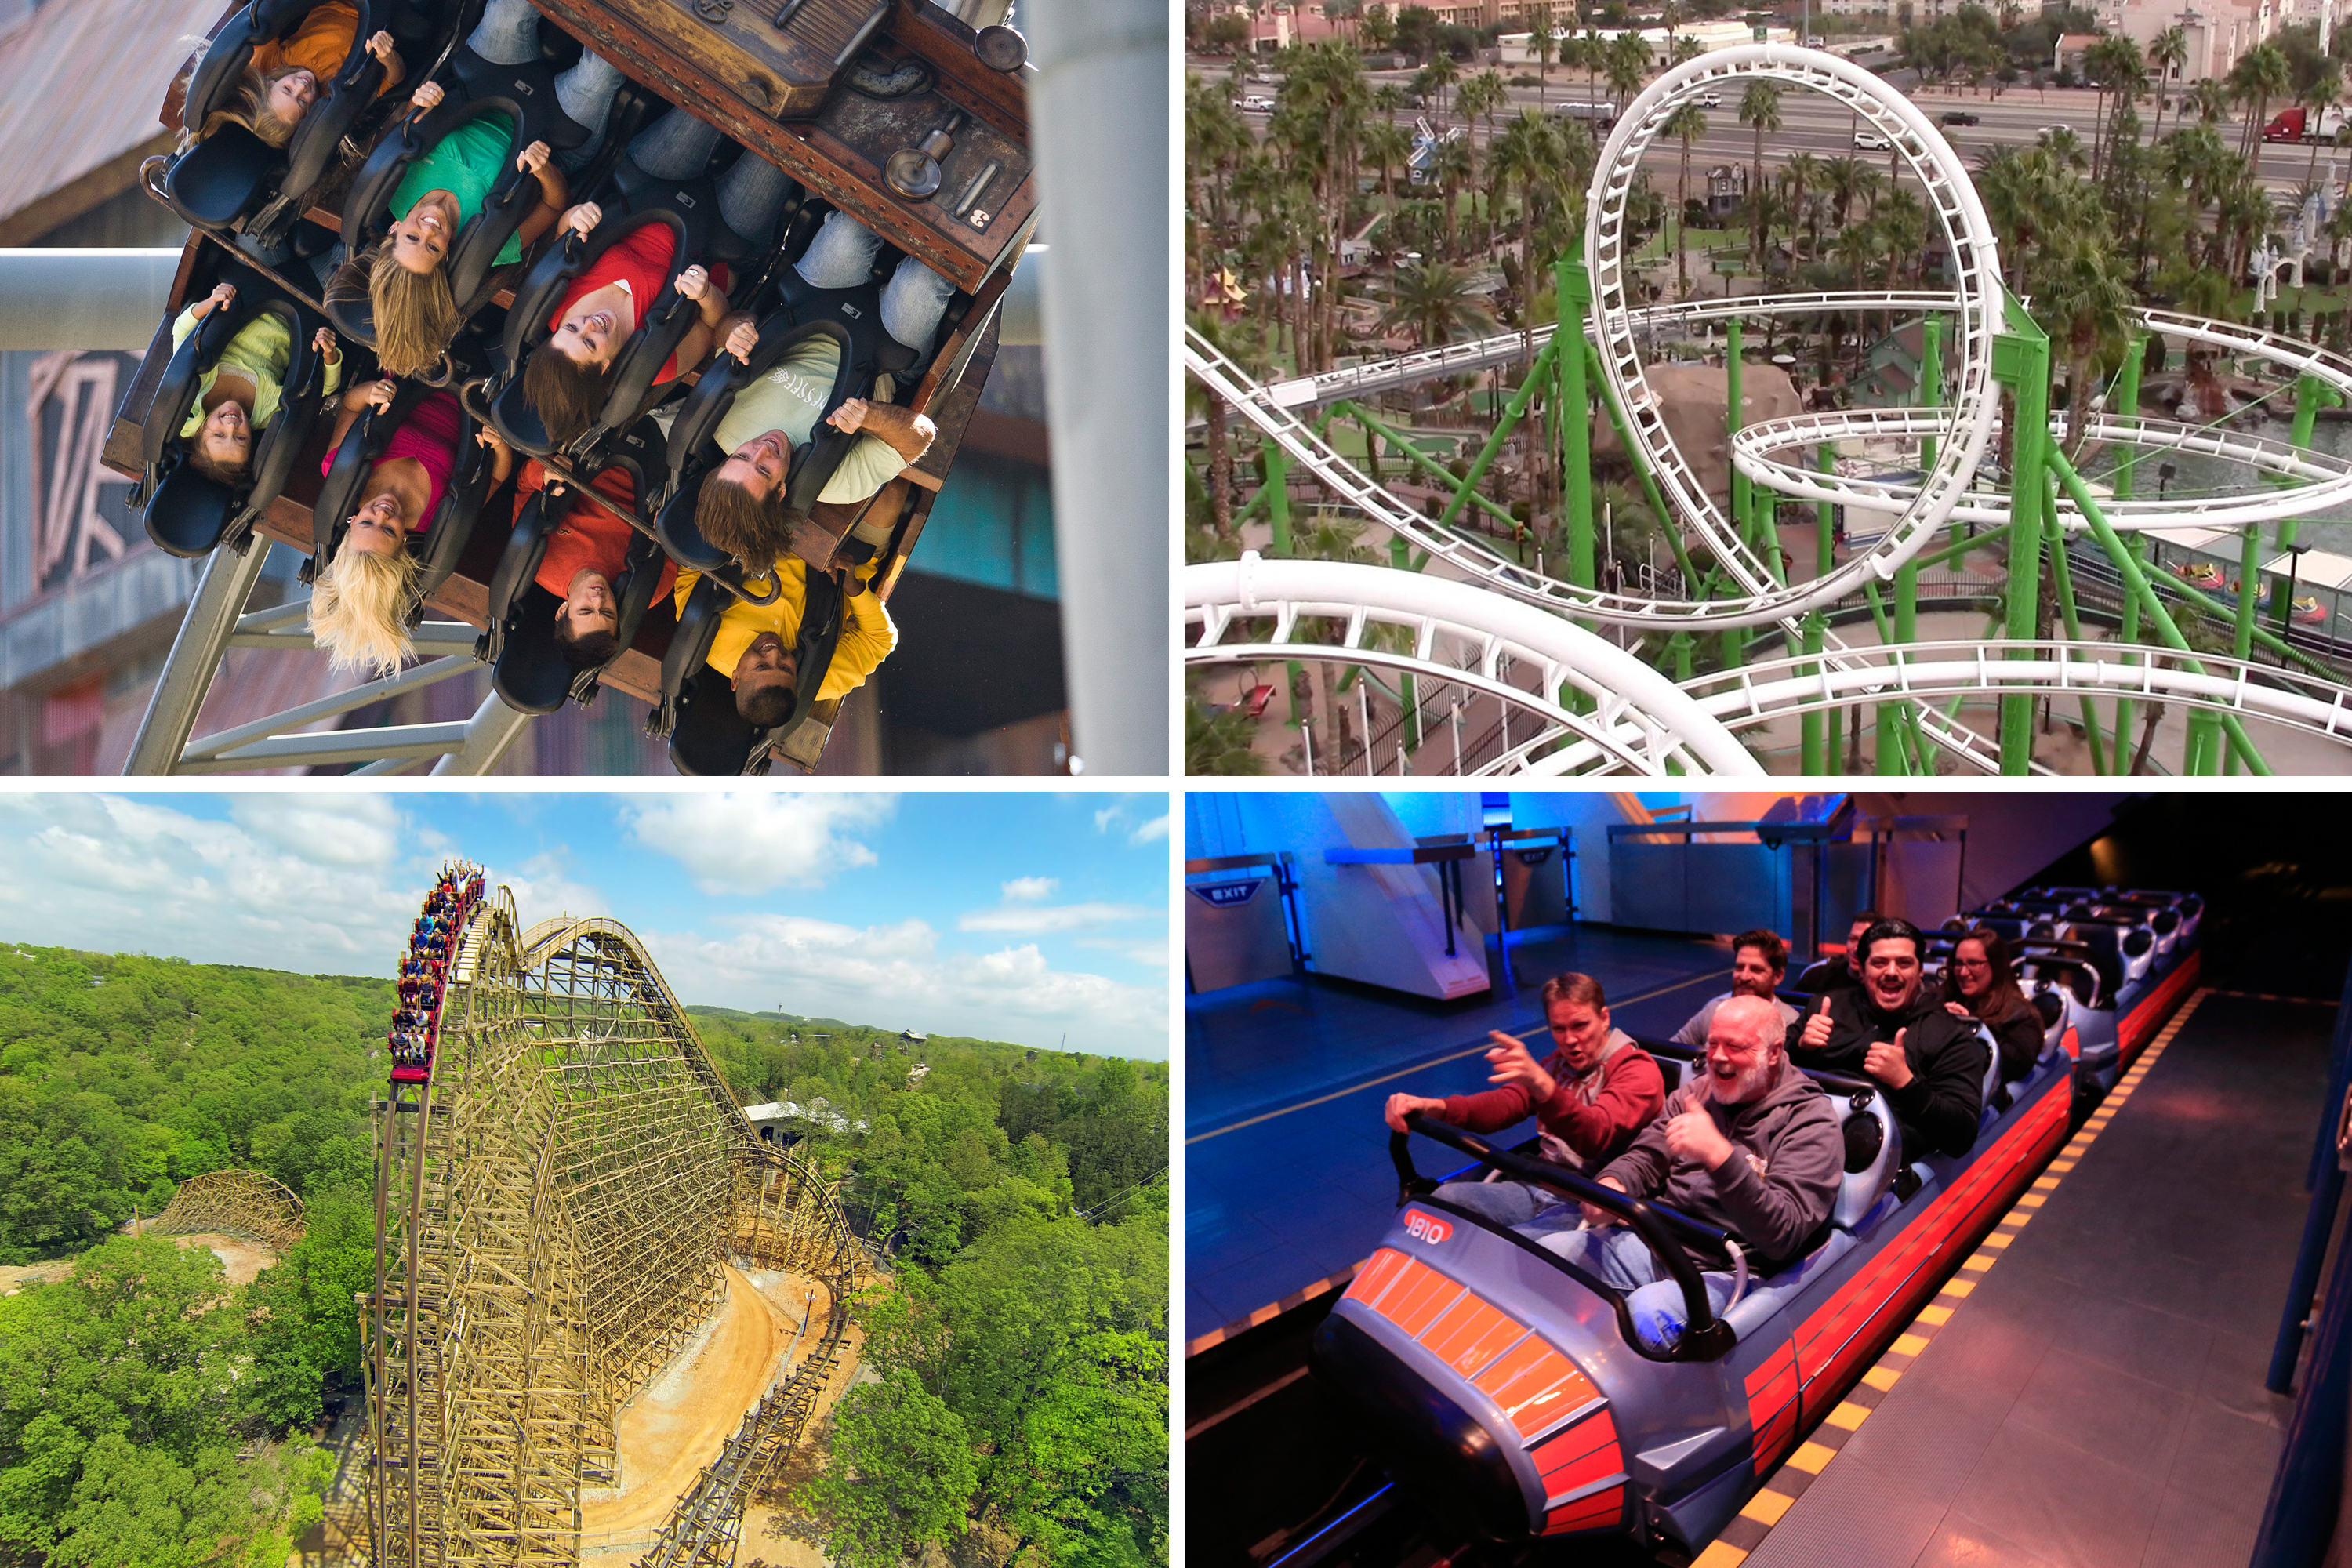 The 10 Best Amusement Parks Roller Coaster Rides In America Money